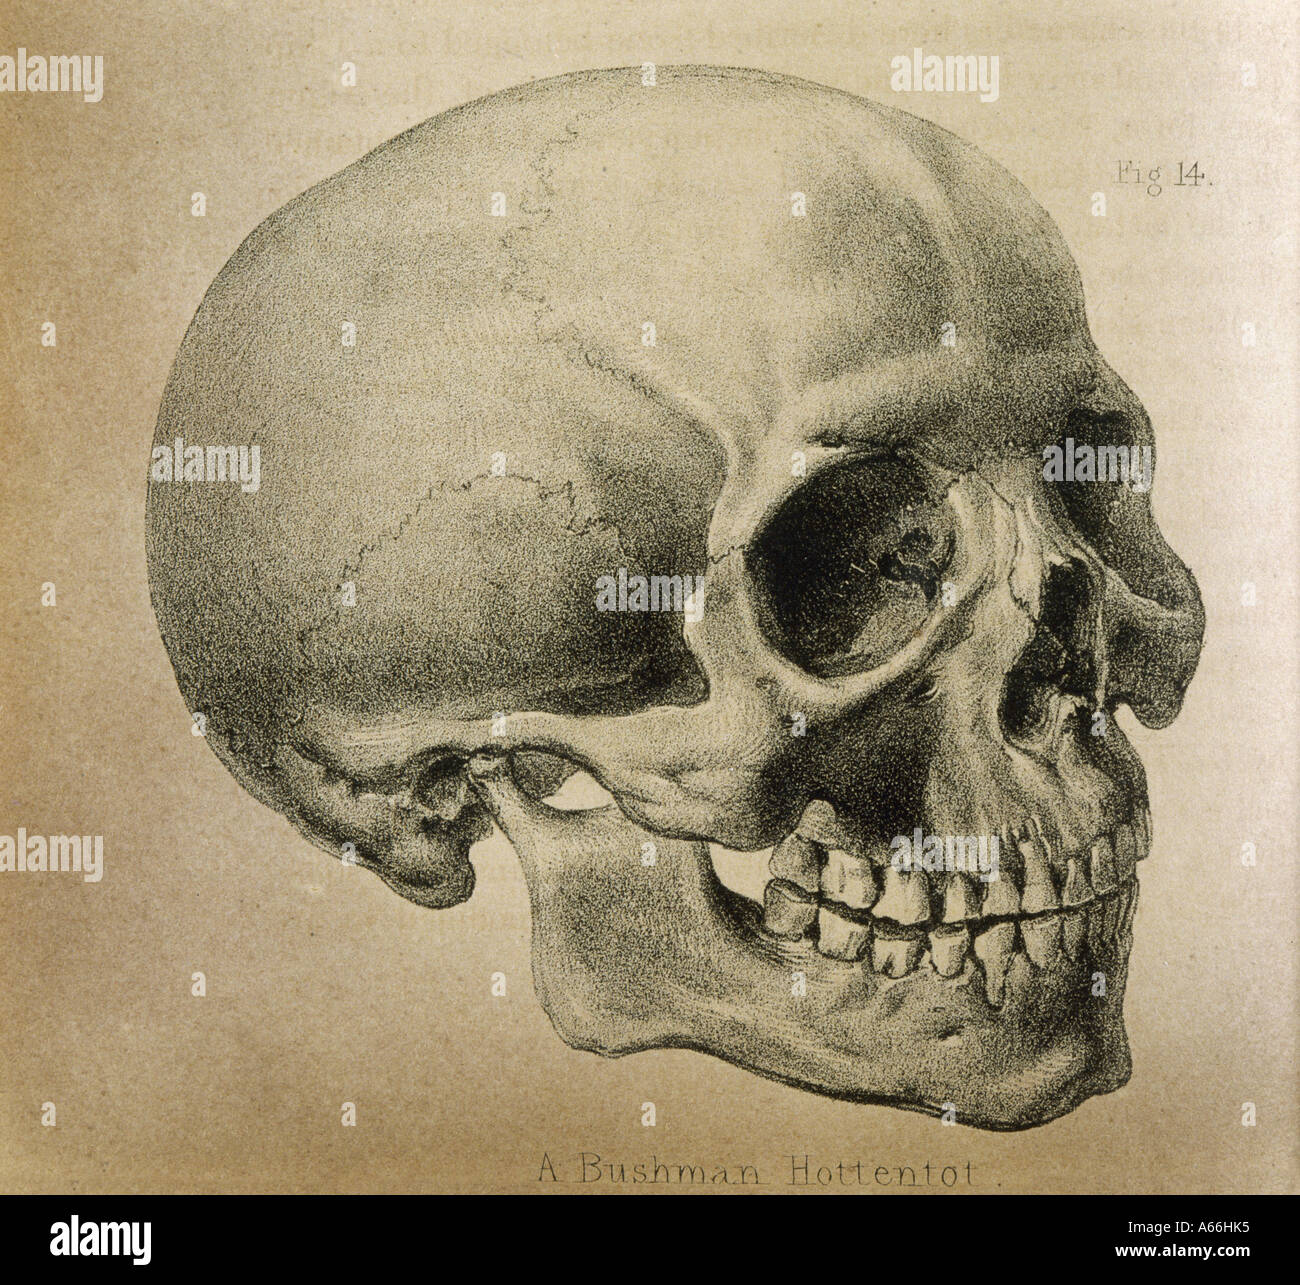 Skull Illustration Historical Stockfotos & Skull Illustration ...